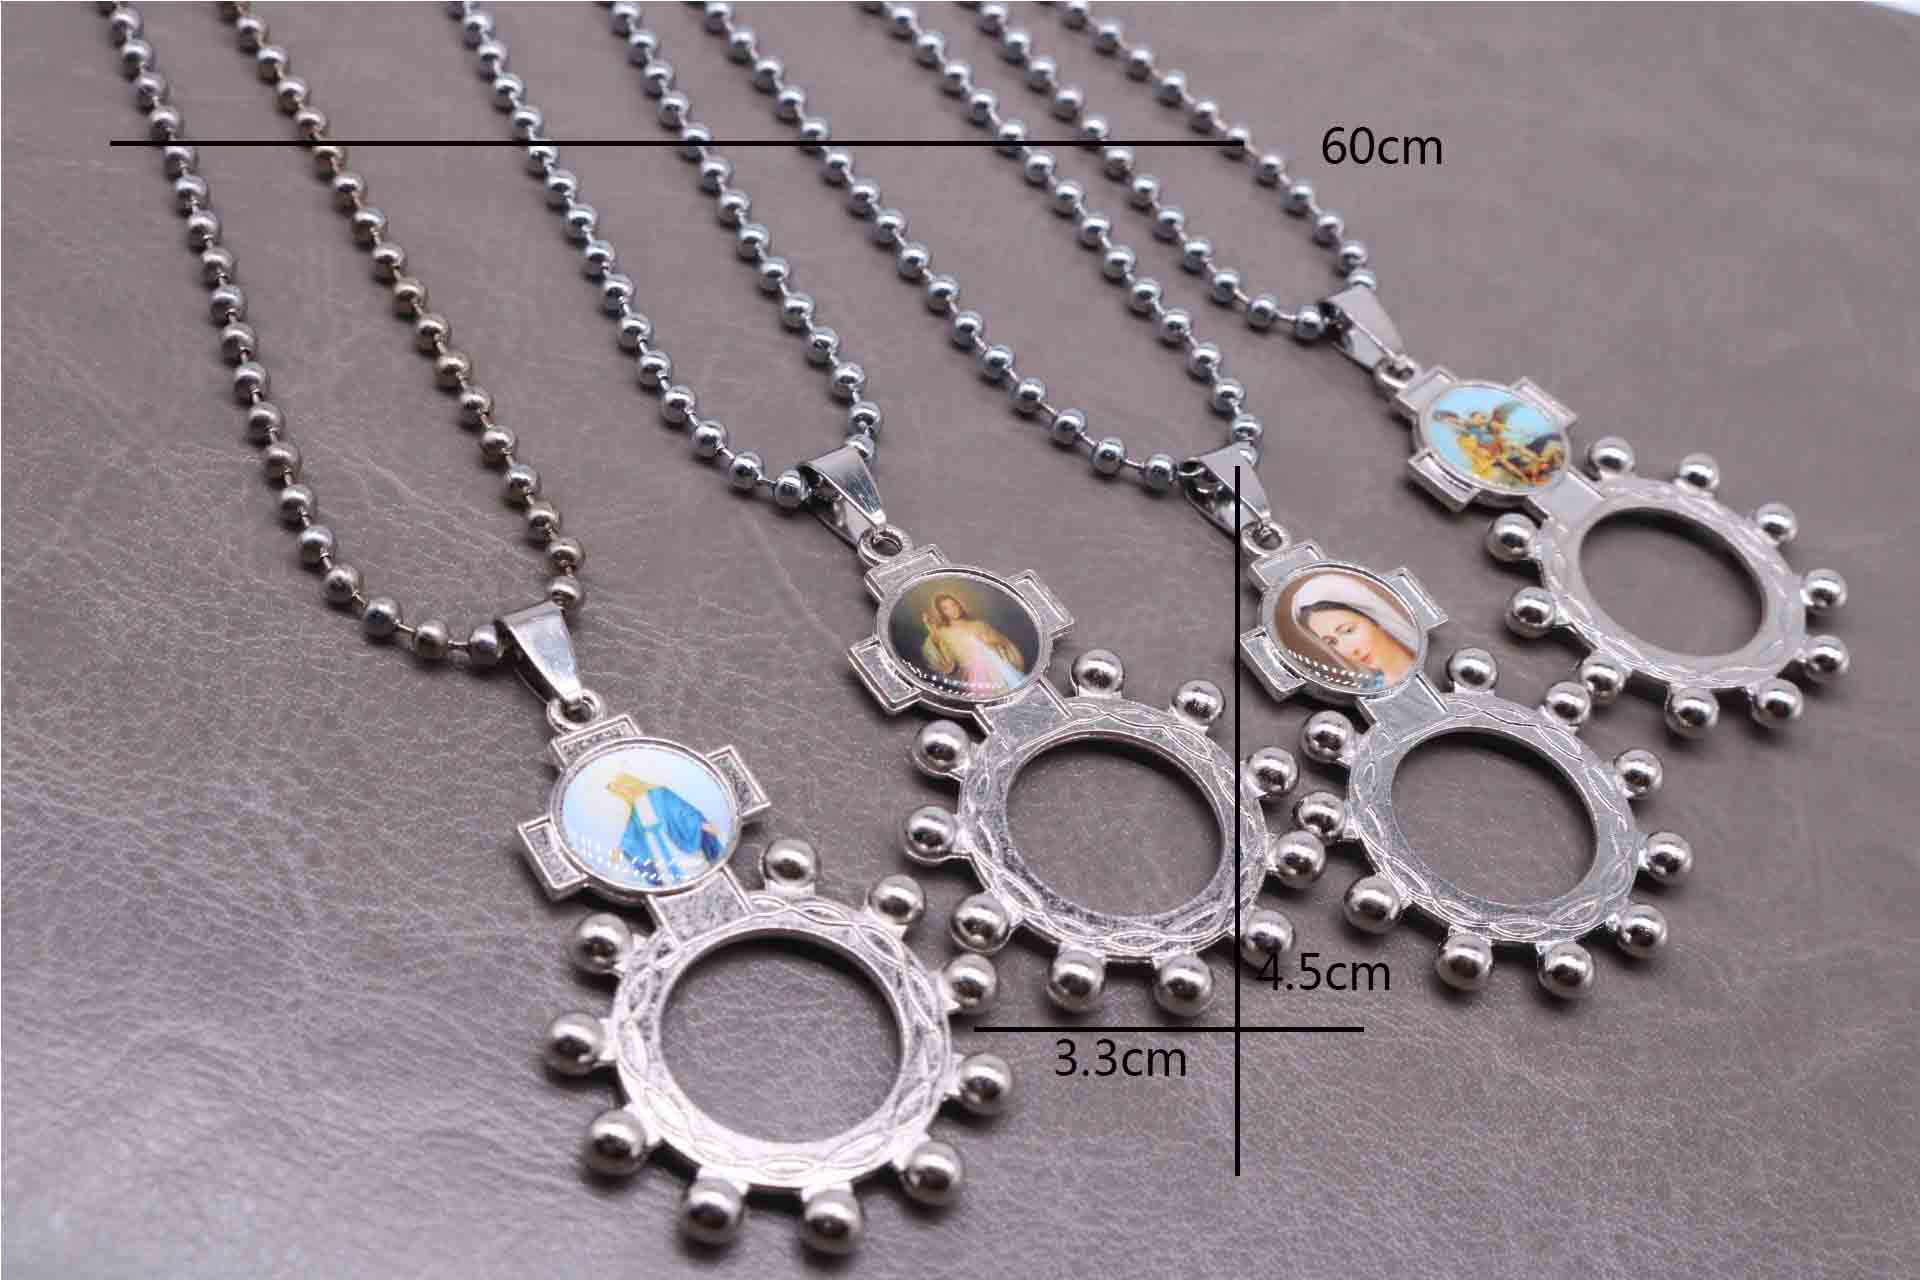 Hot classic Jesus finger clasp pendant long chain. Fingers buckle rose necklace, fashion classic casual pendant beaded